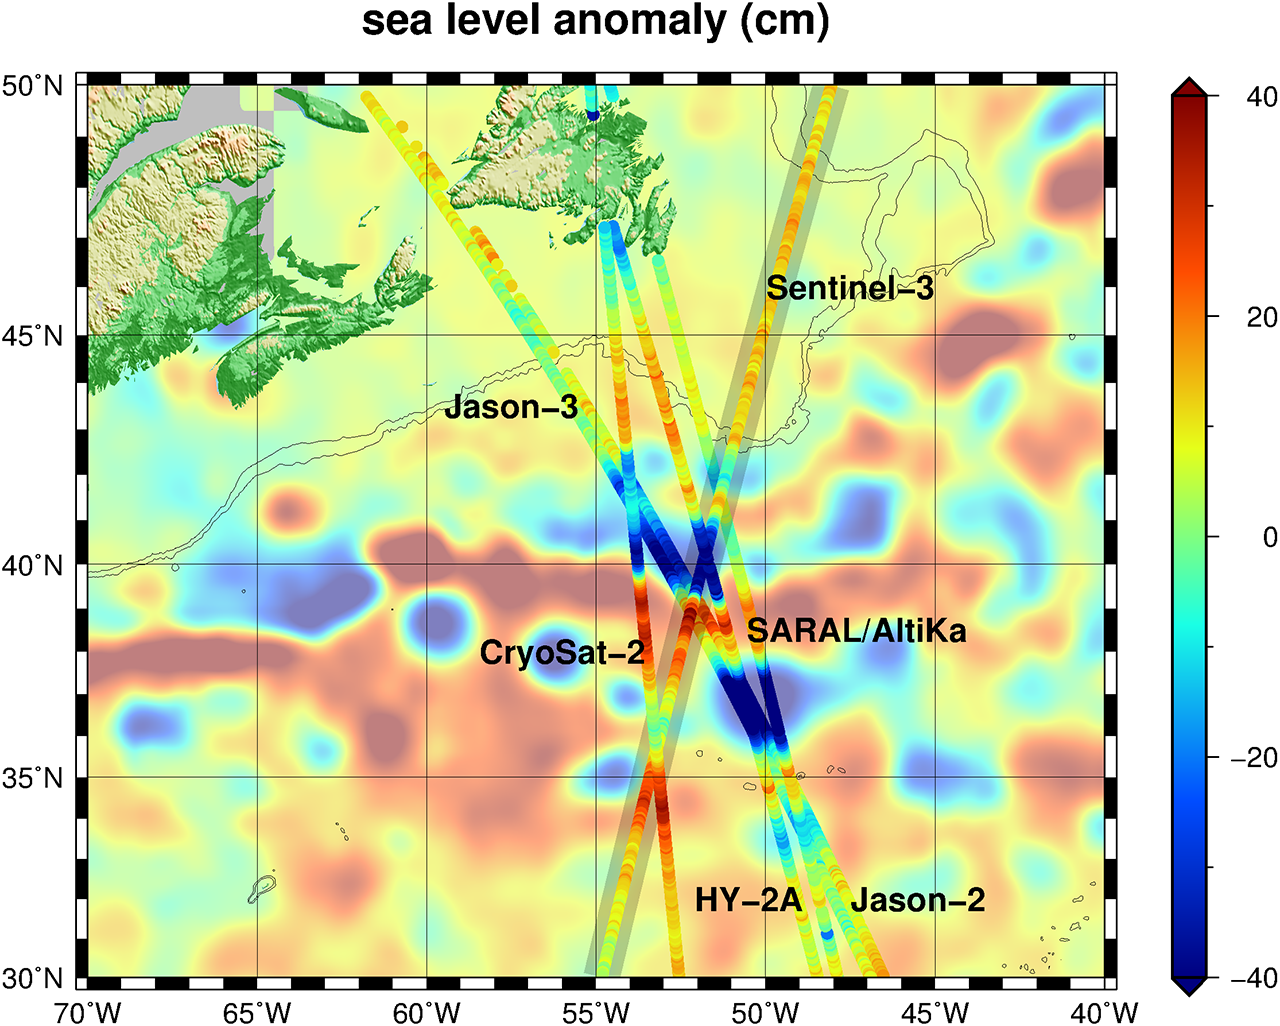 Multi-satellite sea level anomaly measurements are now possible